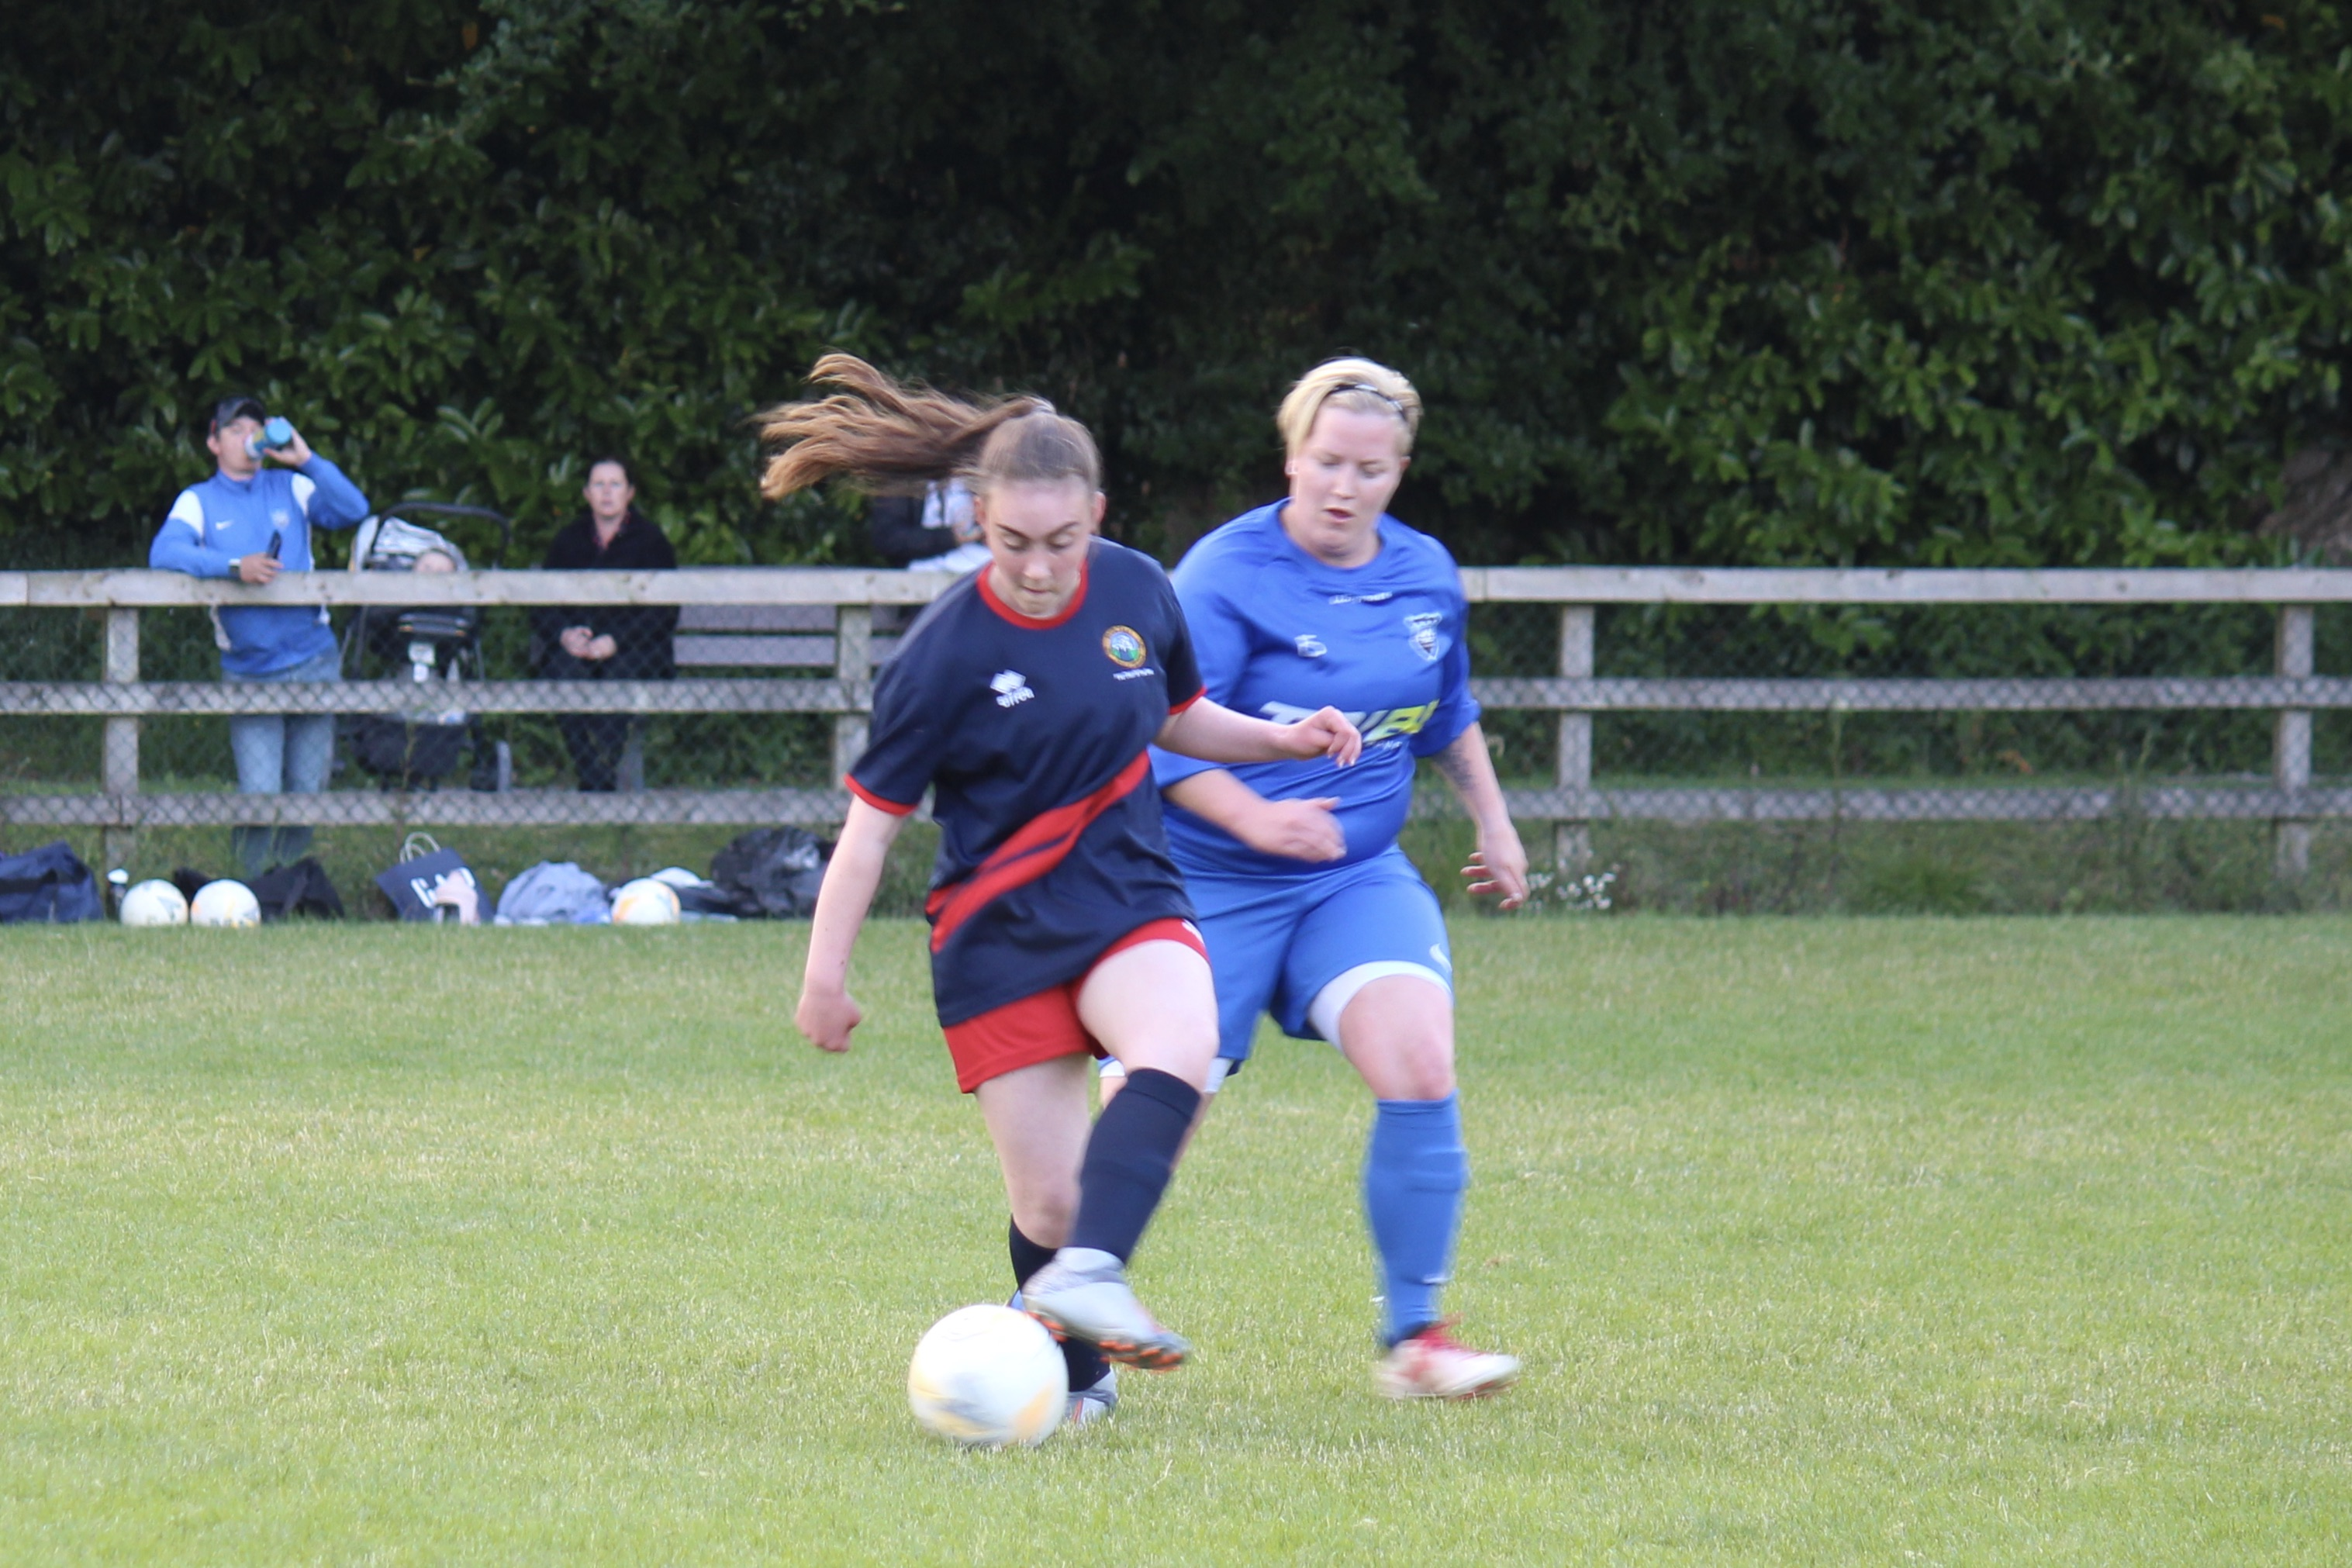 4 goal debut for 15 year old Allison McDonnell